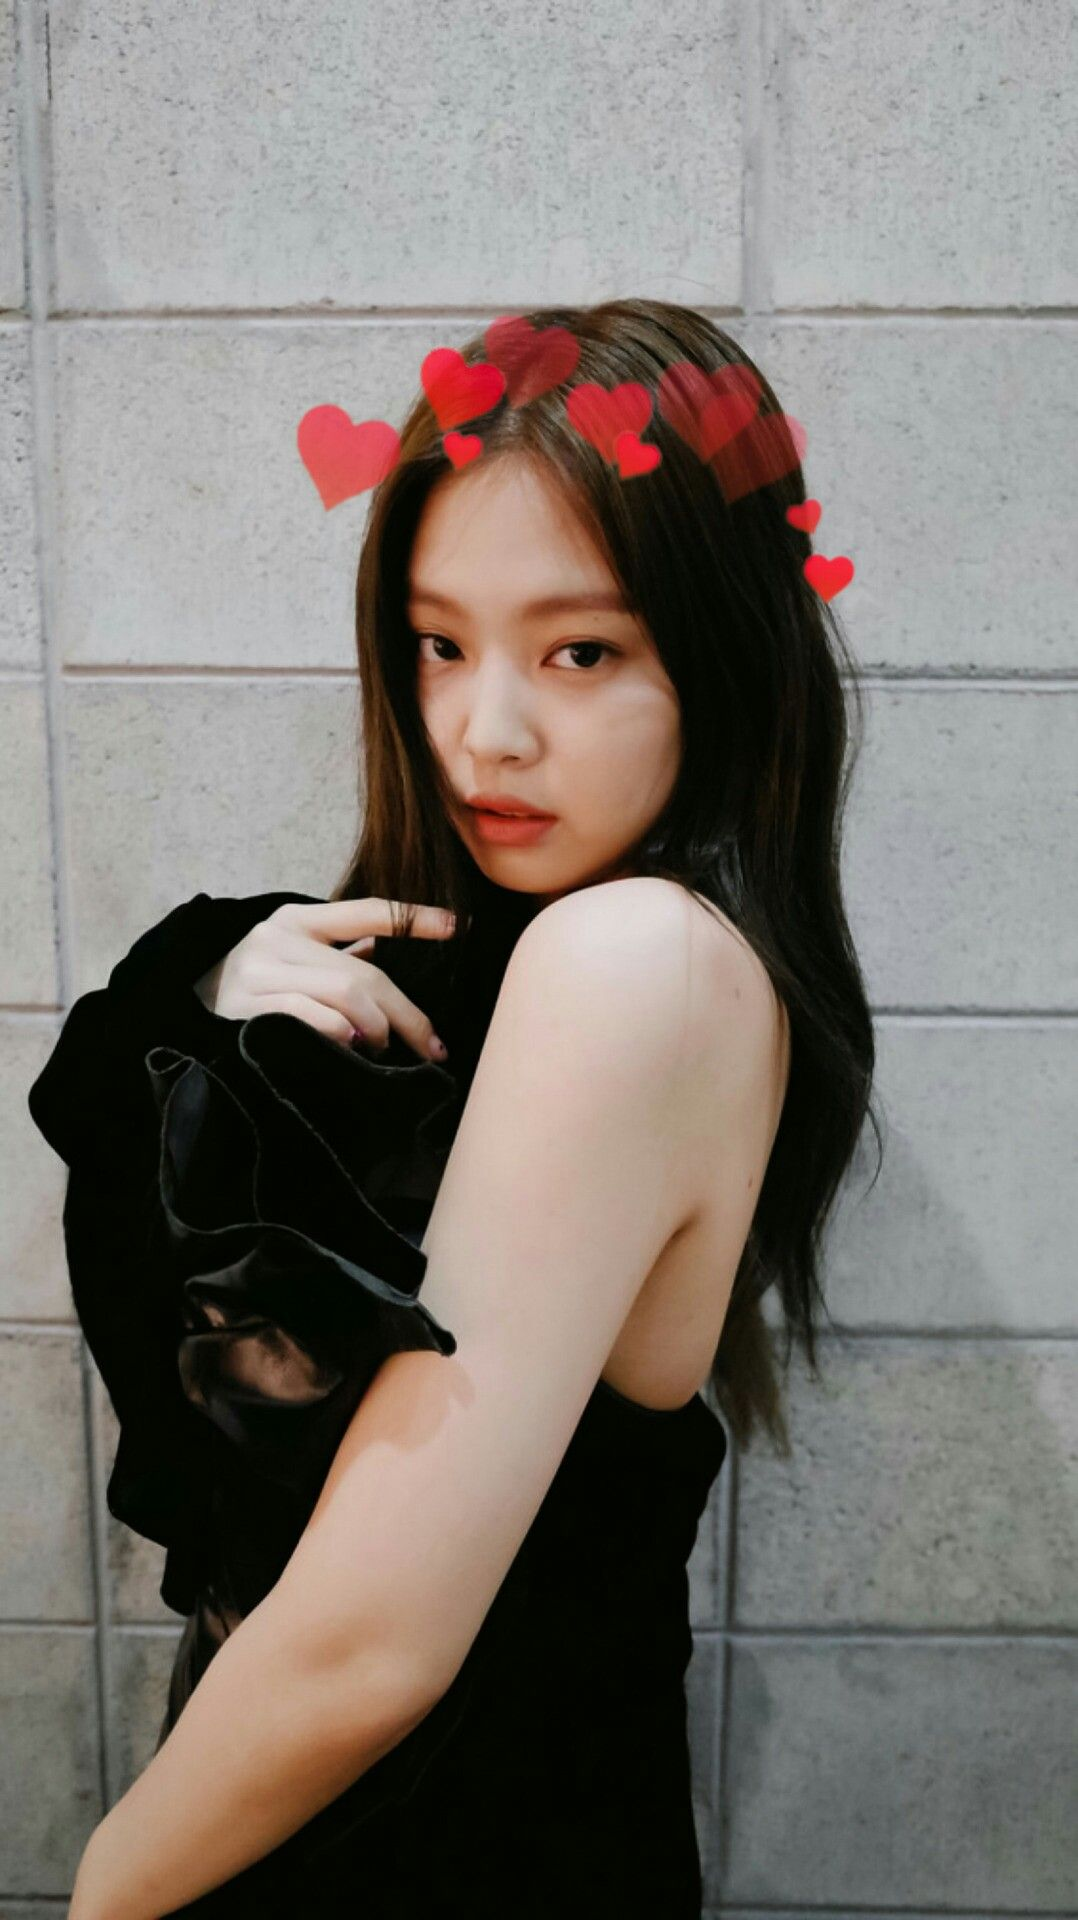 List of New Black Wallpaper Iphone Aesthetic Girl for iPhone X Today